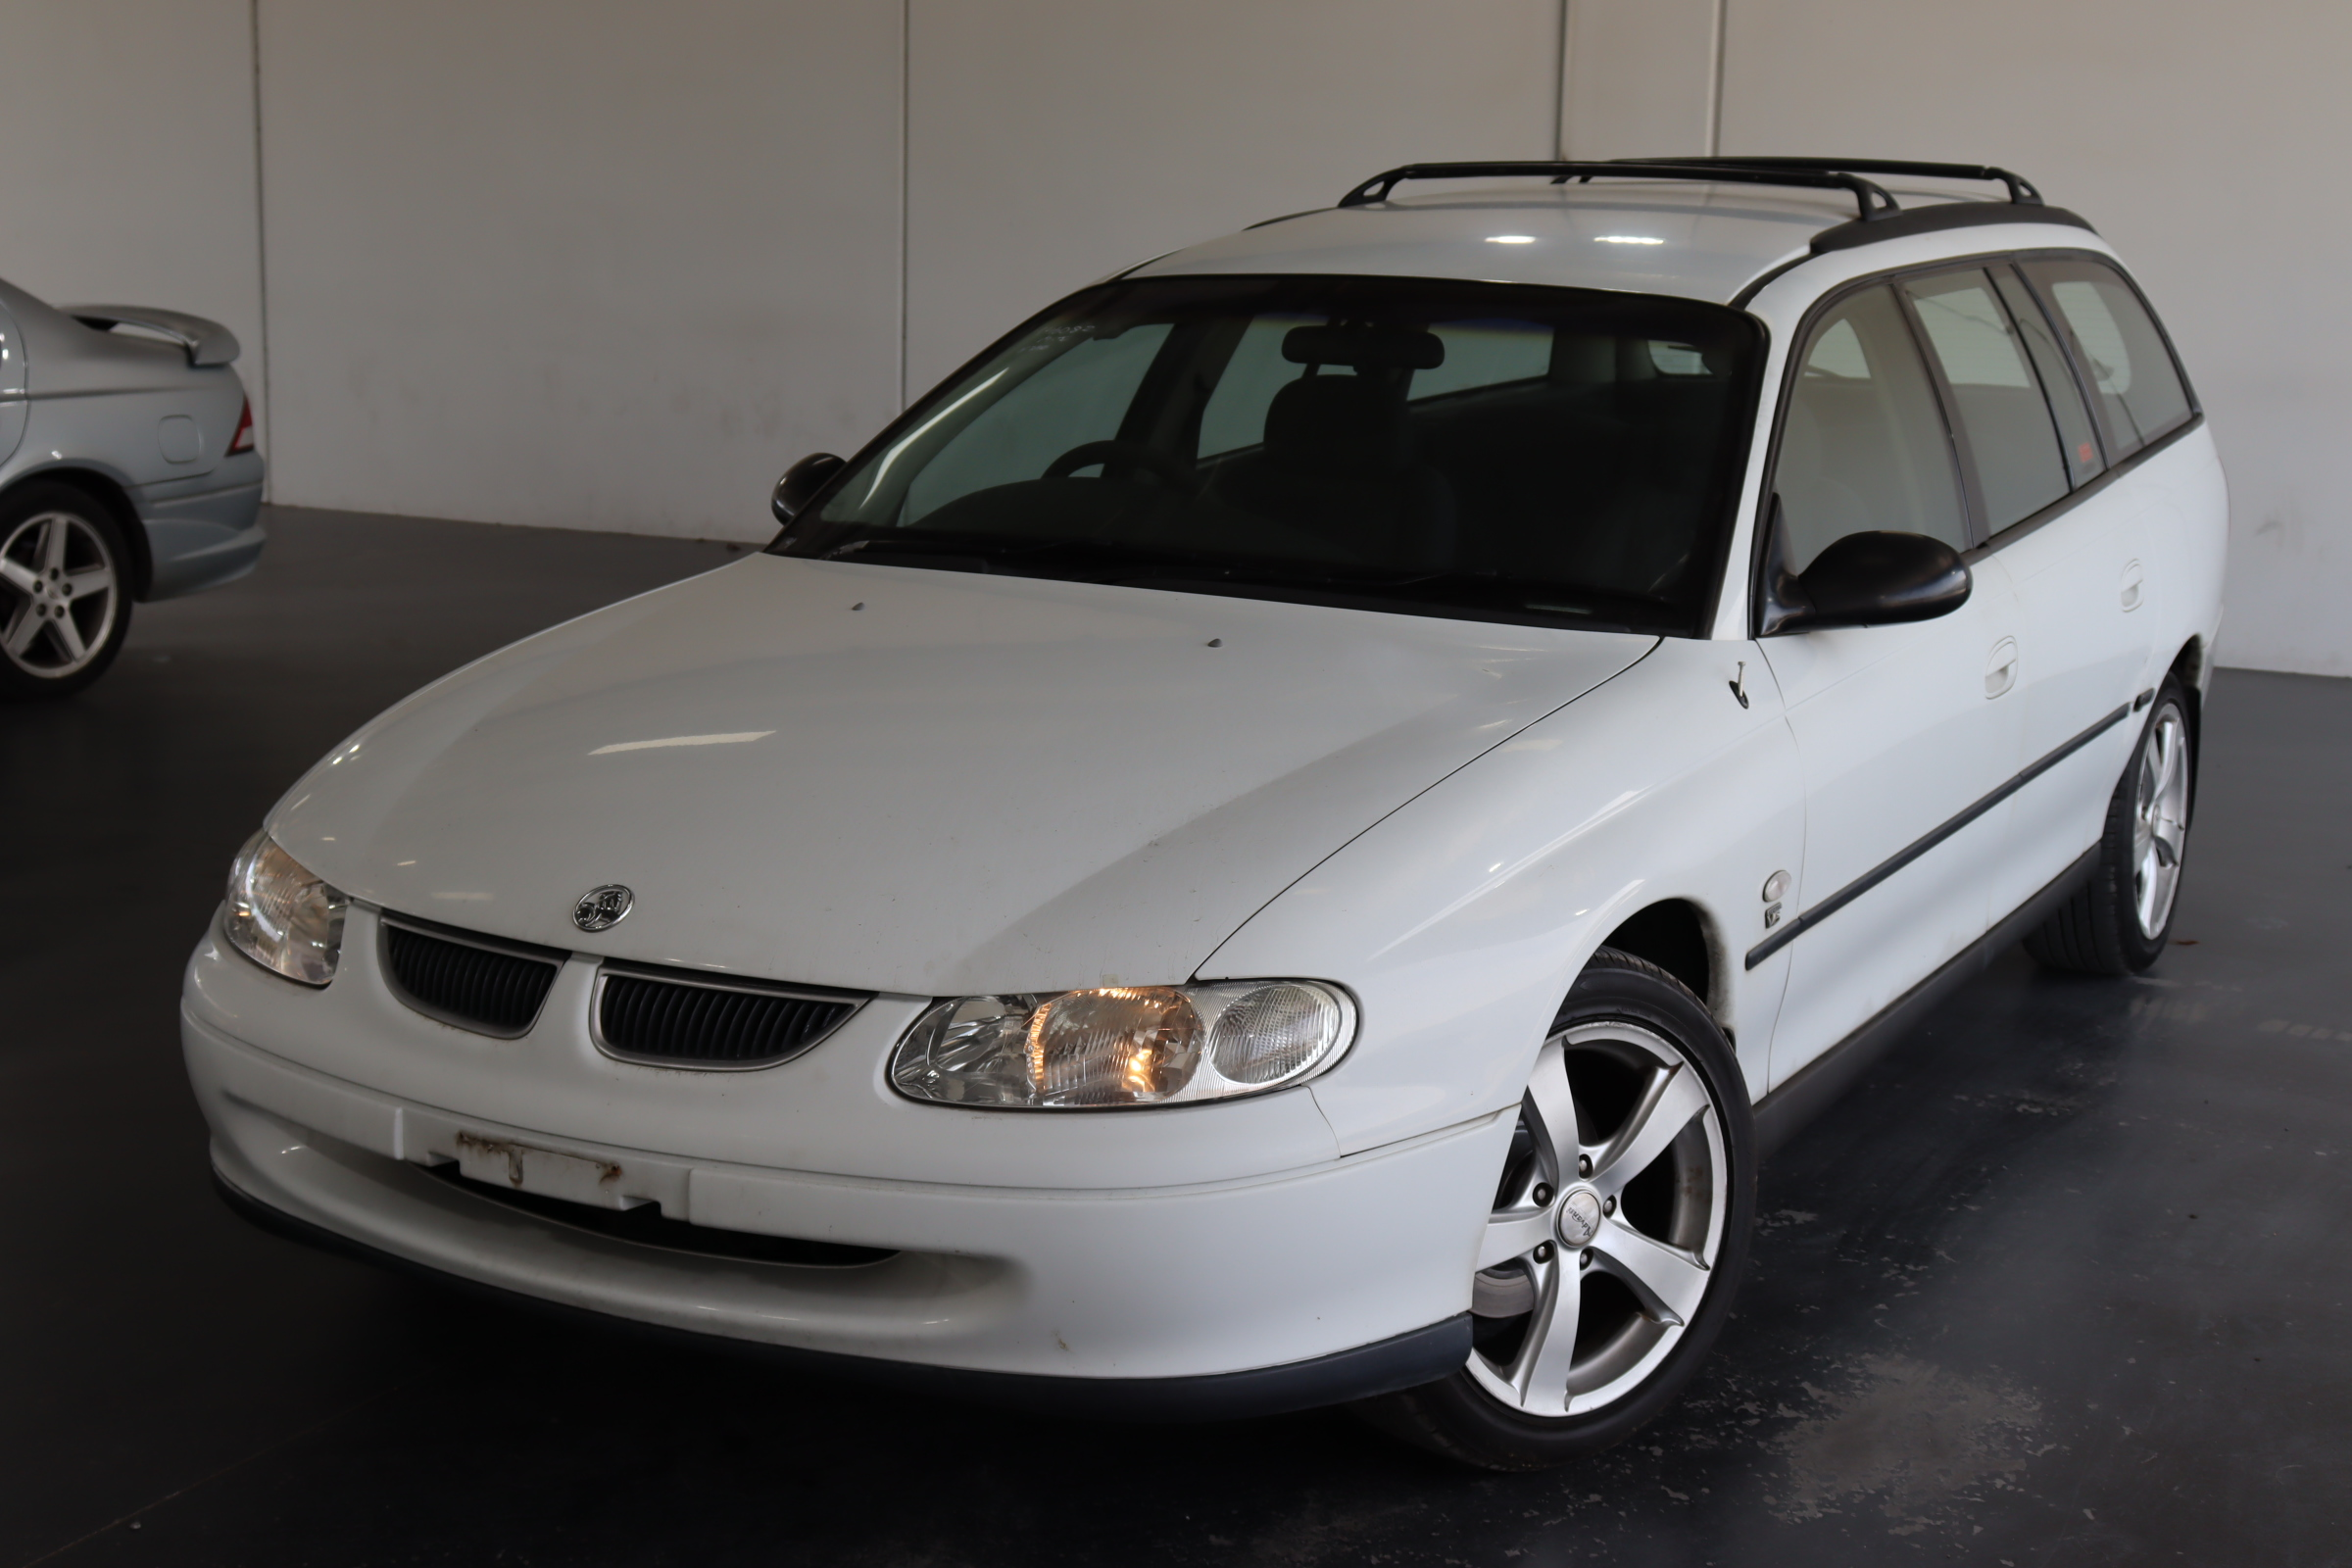 1999 Holden Commodore Executive VT Automatic Wagon